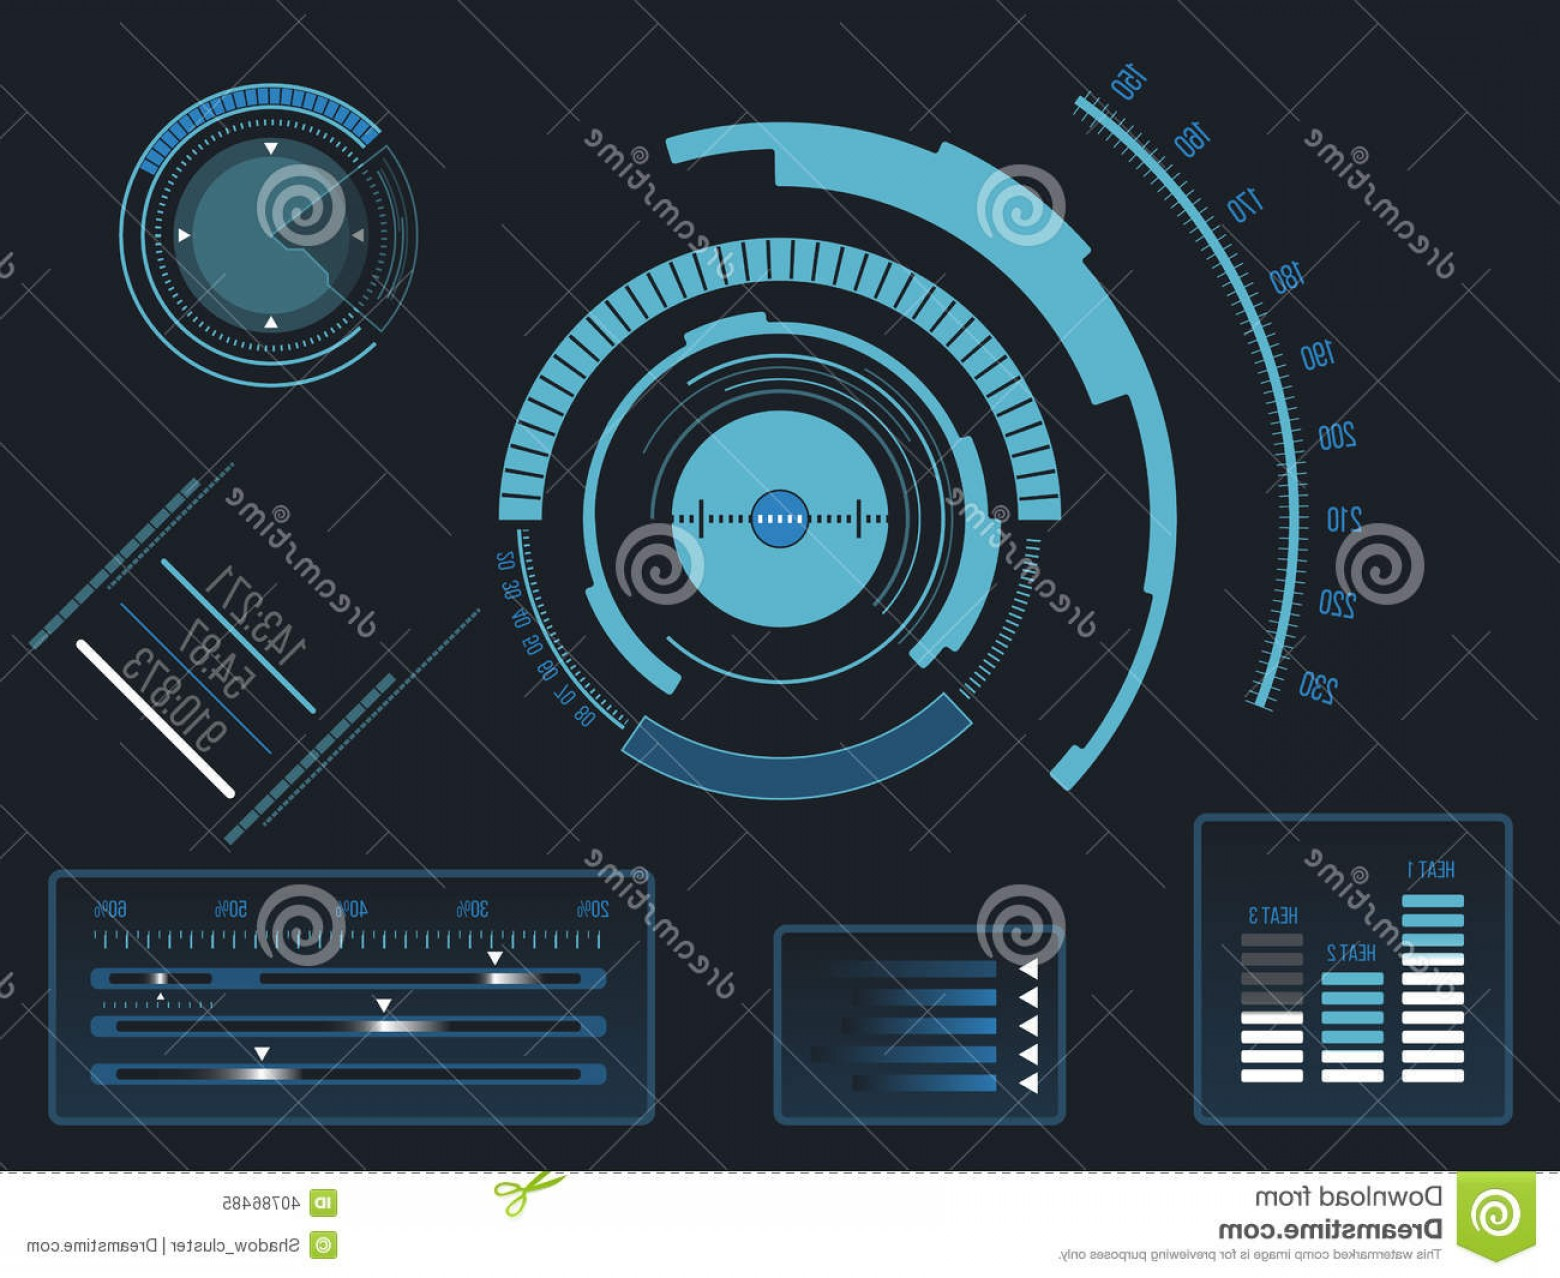 Futuristic Render Vector Graphics: Royalty Free Stock Photo Futuristic User Interface Hud Blue Virtual Graphic Touch Image